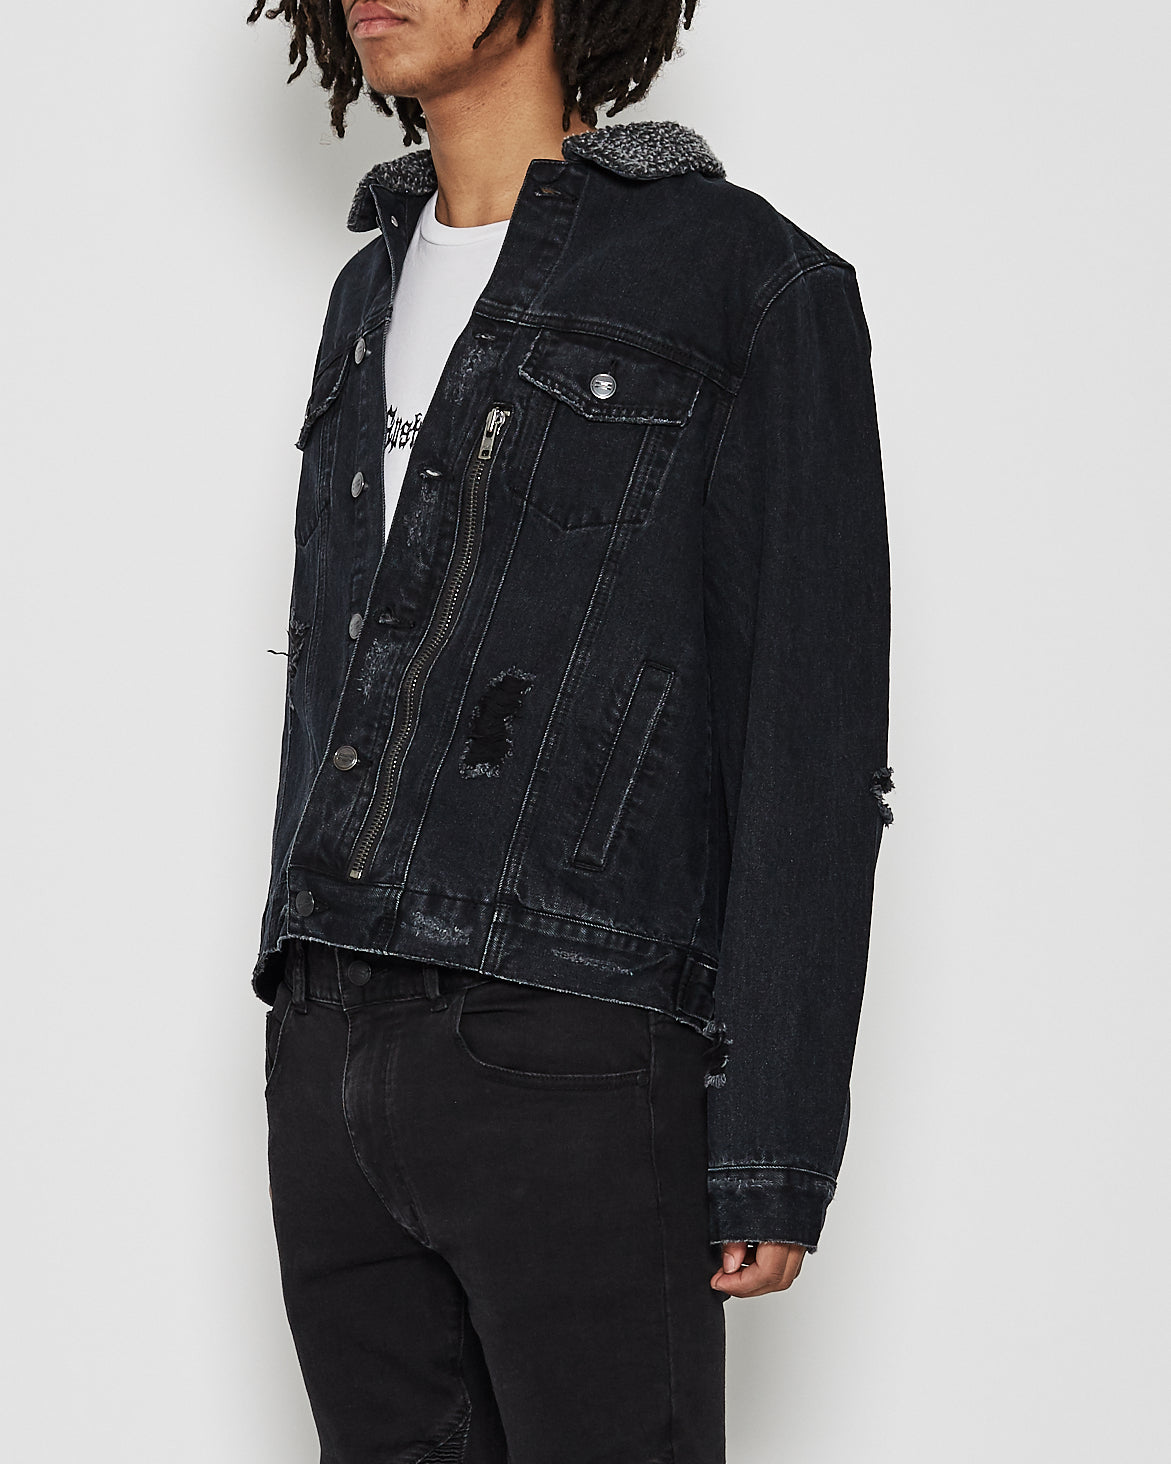 Jeneau Denim Jacket Vintage Black